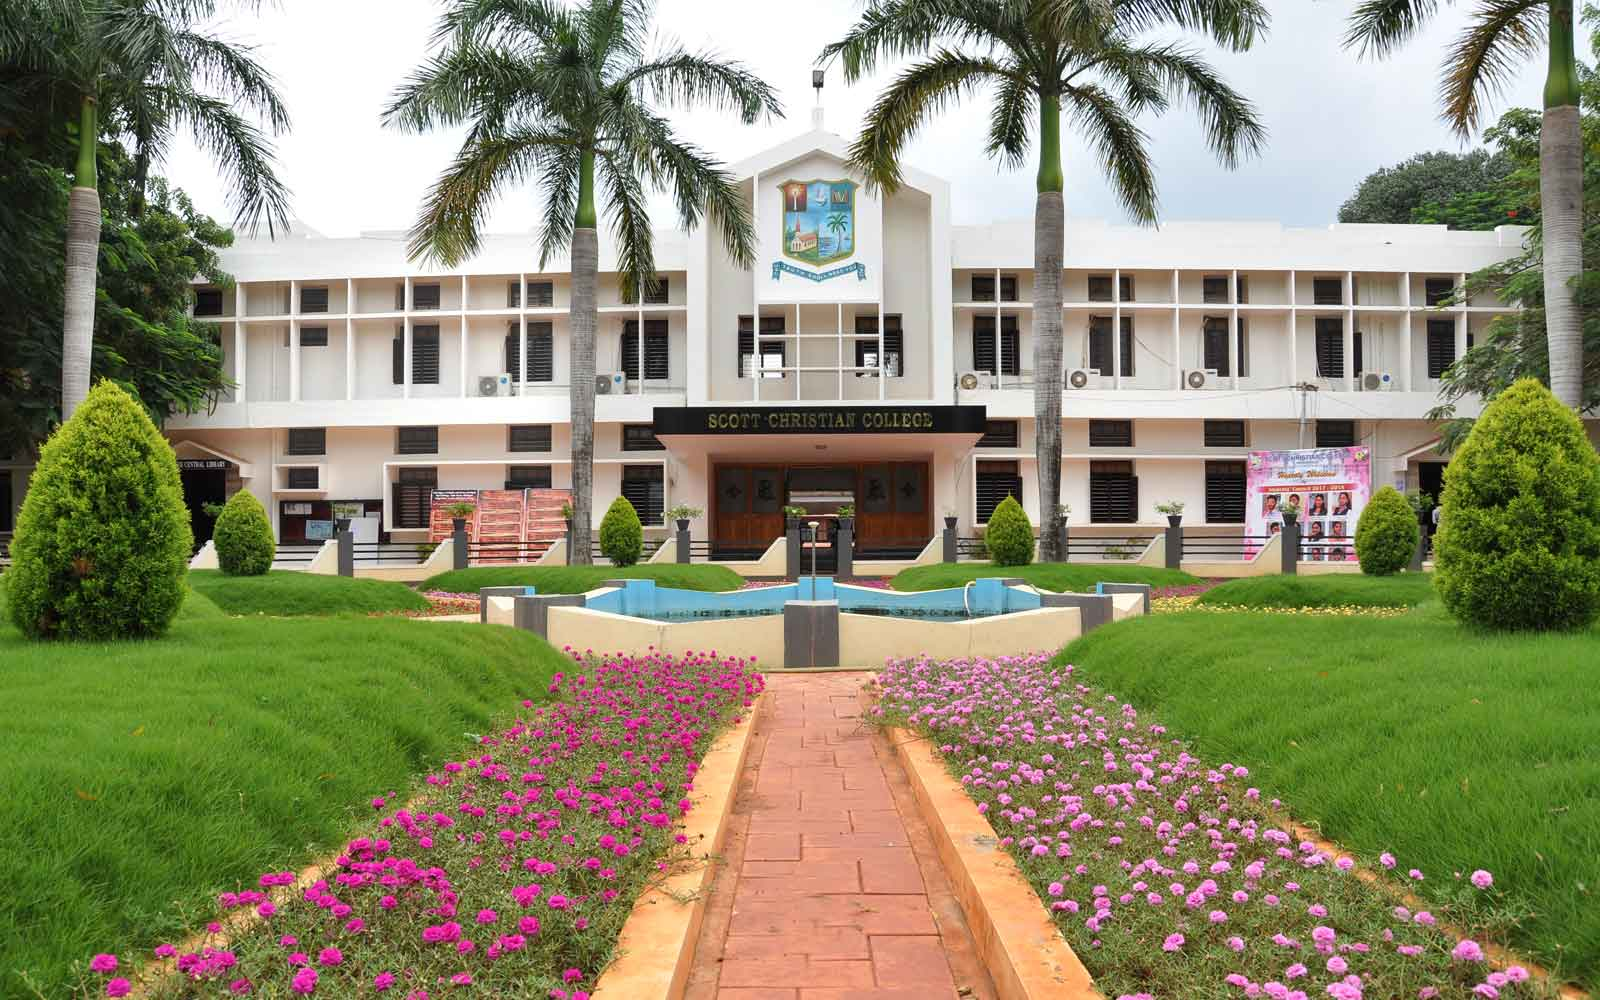 Scott Christian College, Nagercoil Image